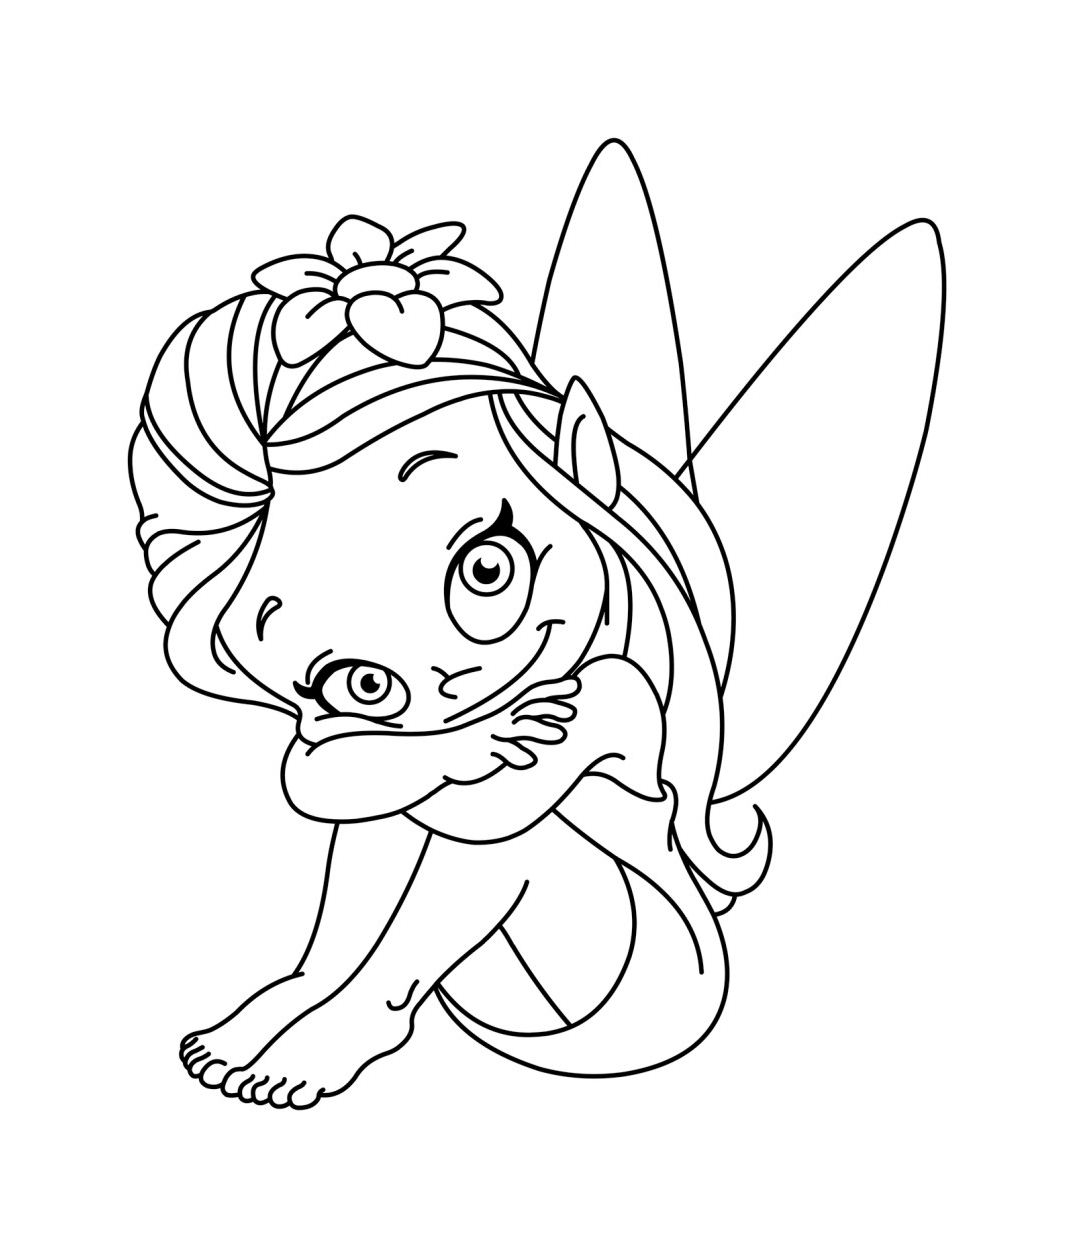 Fairy free to color for kids - Fairy Kids Coloring Pages